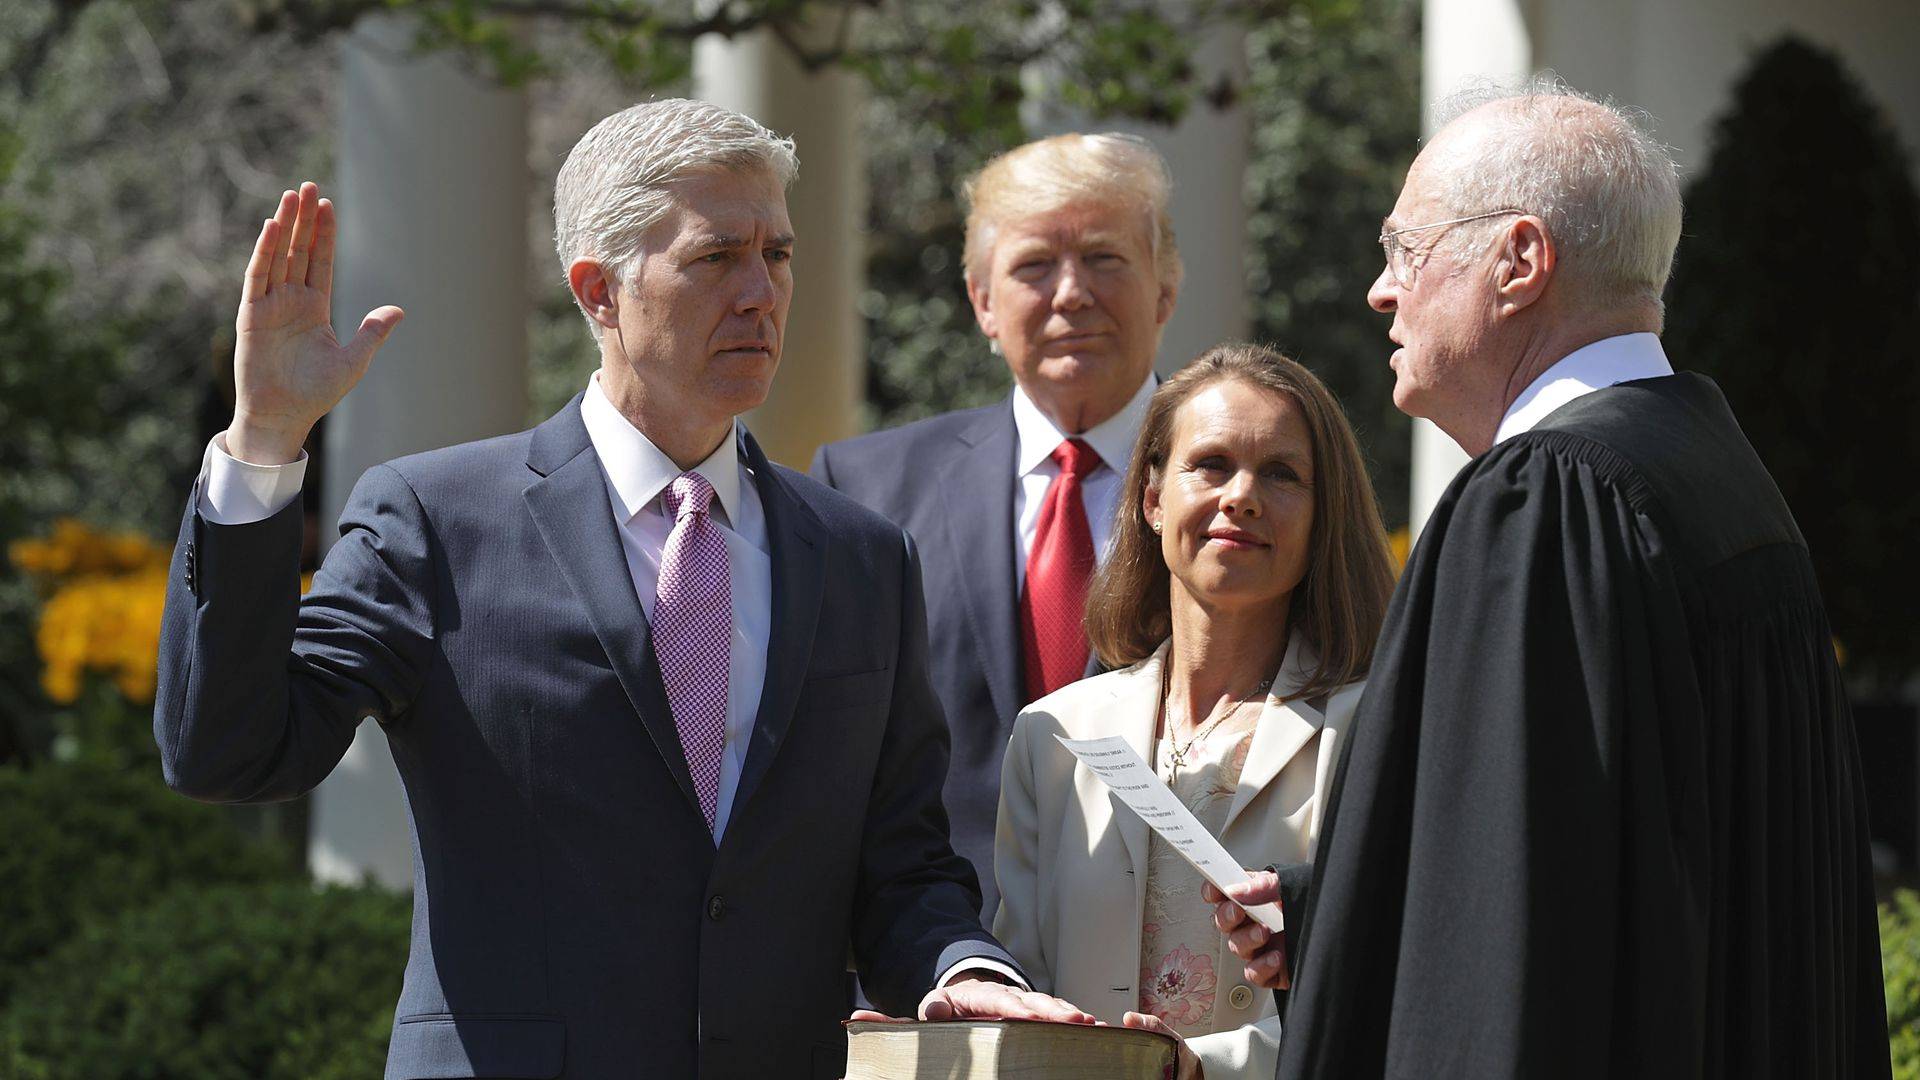 Anthony Kennedy swearing in Neil Gorsuch in 2017